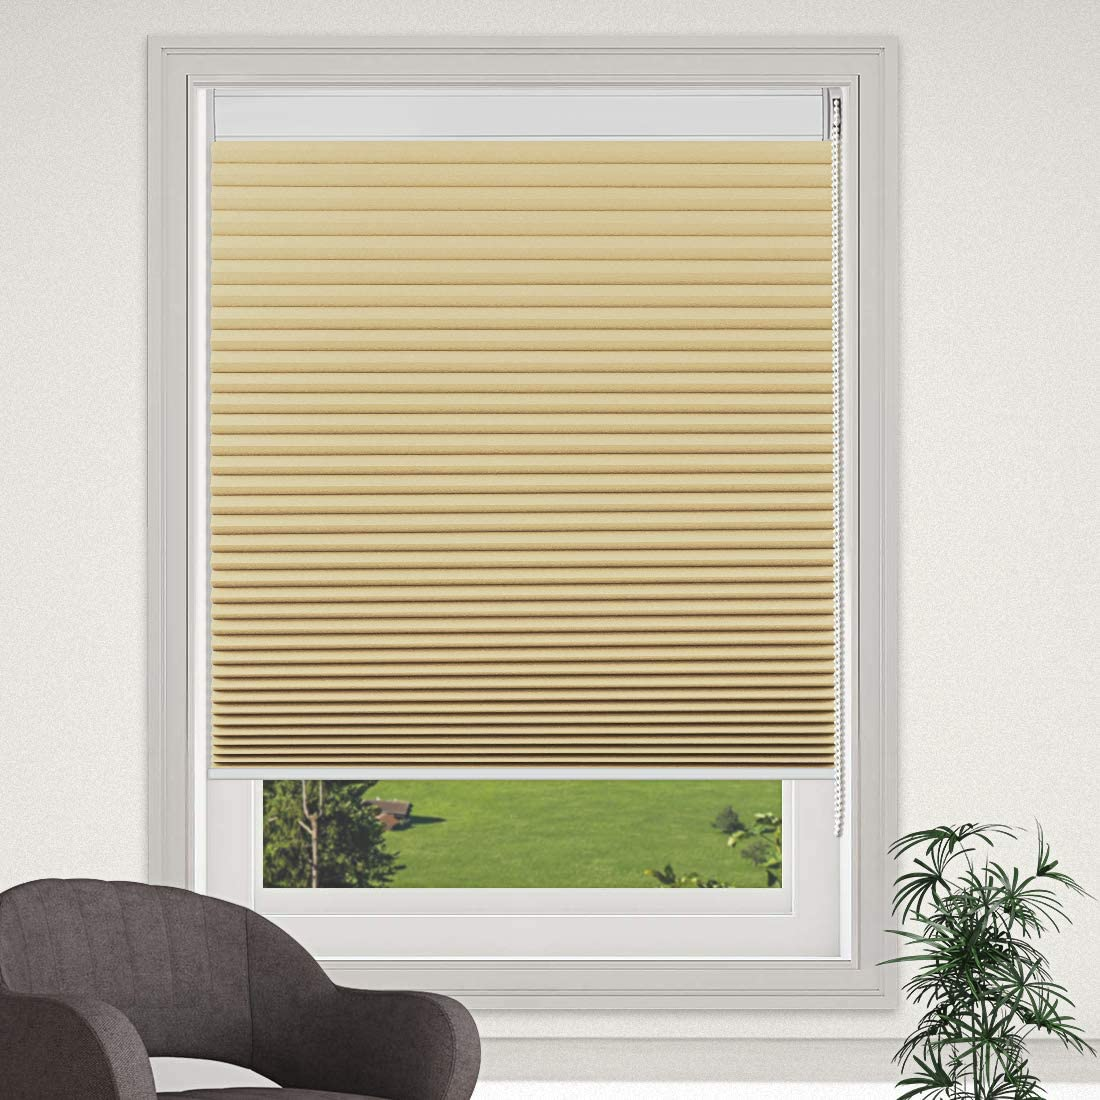 MiLin Blackout Cellular Shades Honeycomb Corded Roller Blinds, Fast Delivery Bedroom Kitchen Window Blinds and Shades Custom Cut to Size - Toasted Almond 63 1/2